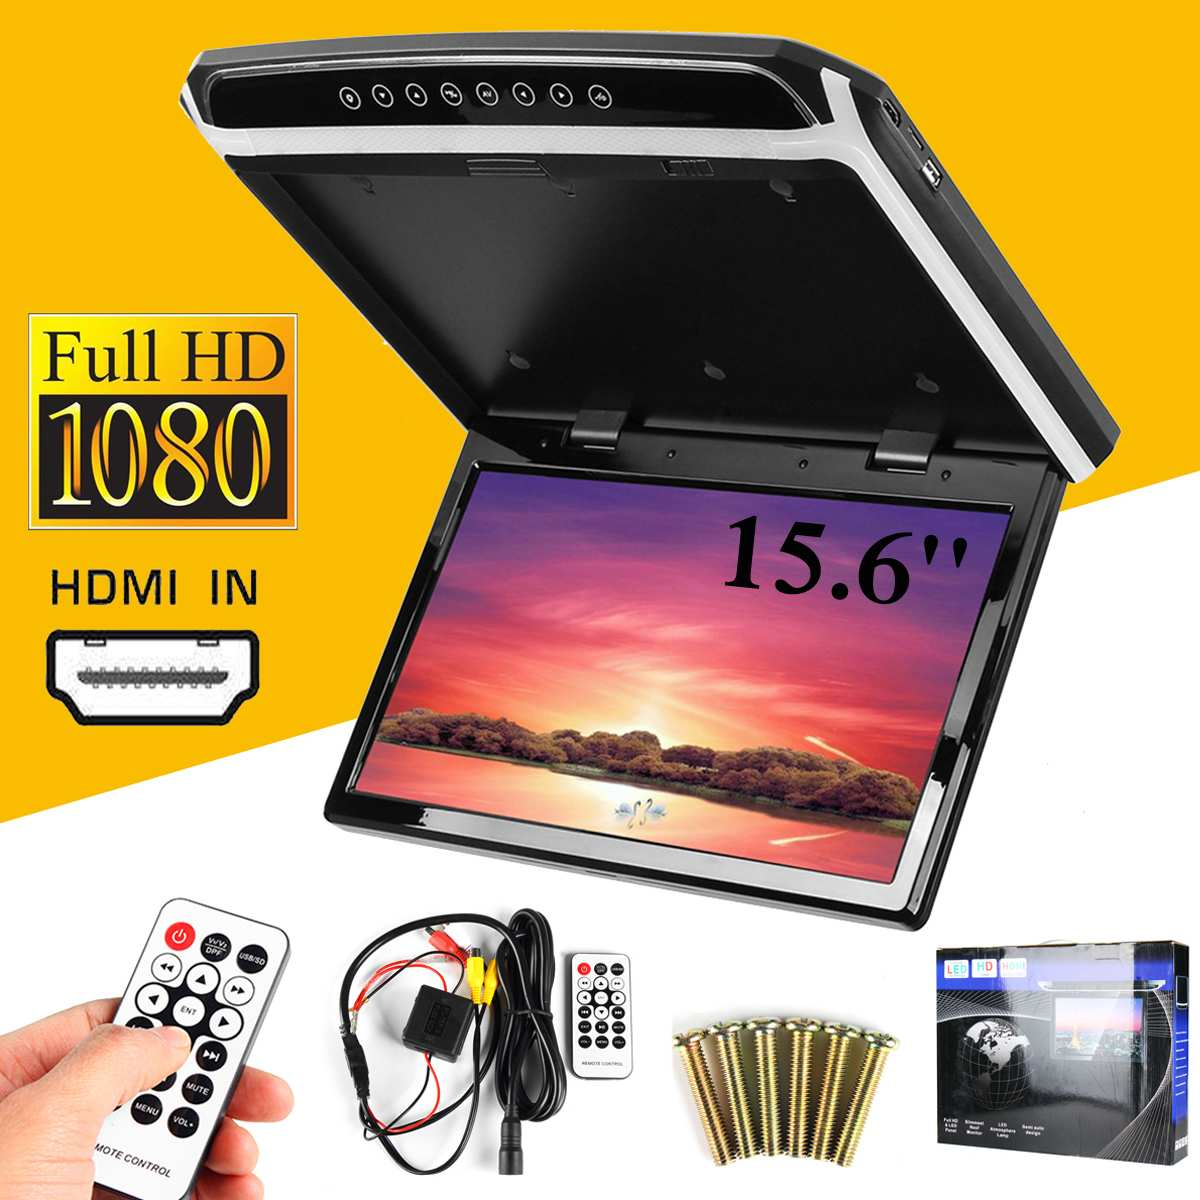 15.6 HD Wide Screen Car DVD Player HDMI Car Ceiling Flip Down Monitor Roof Mount Player 1920*1080 - 3